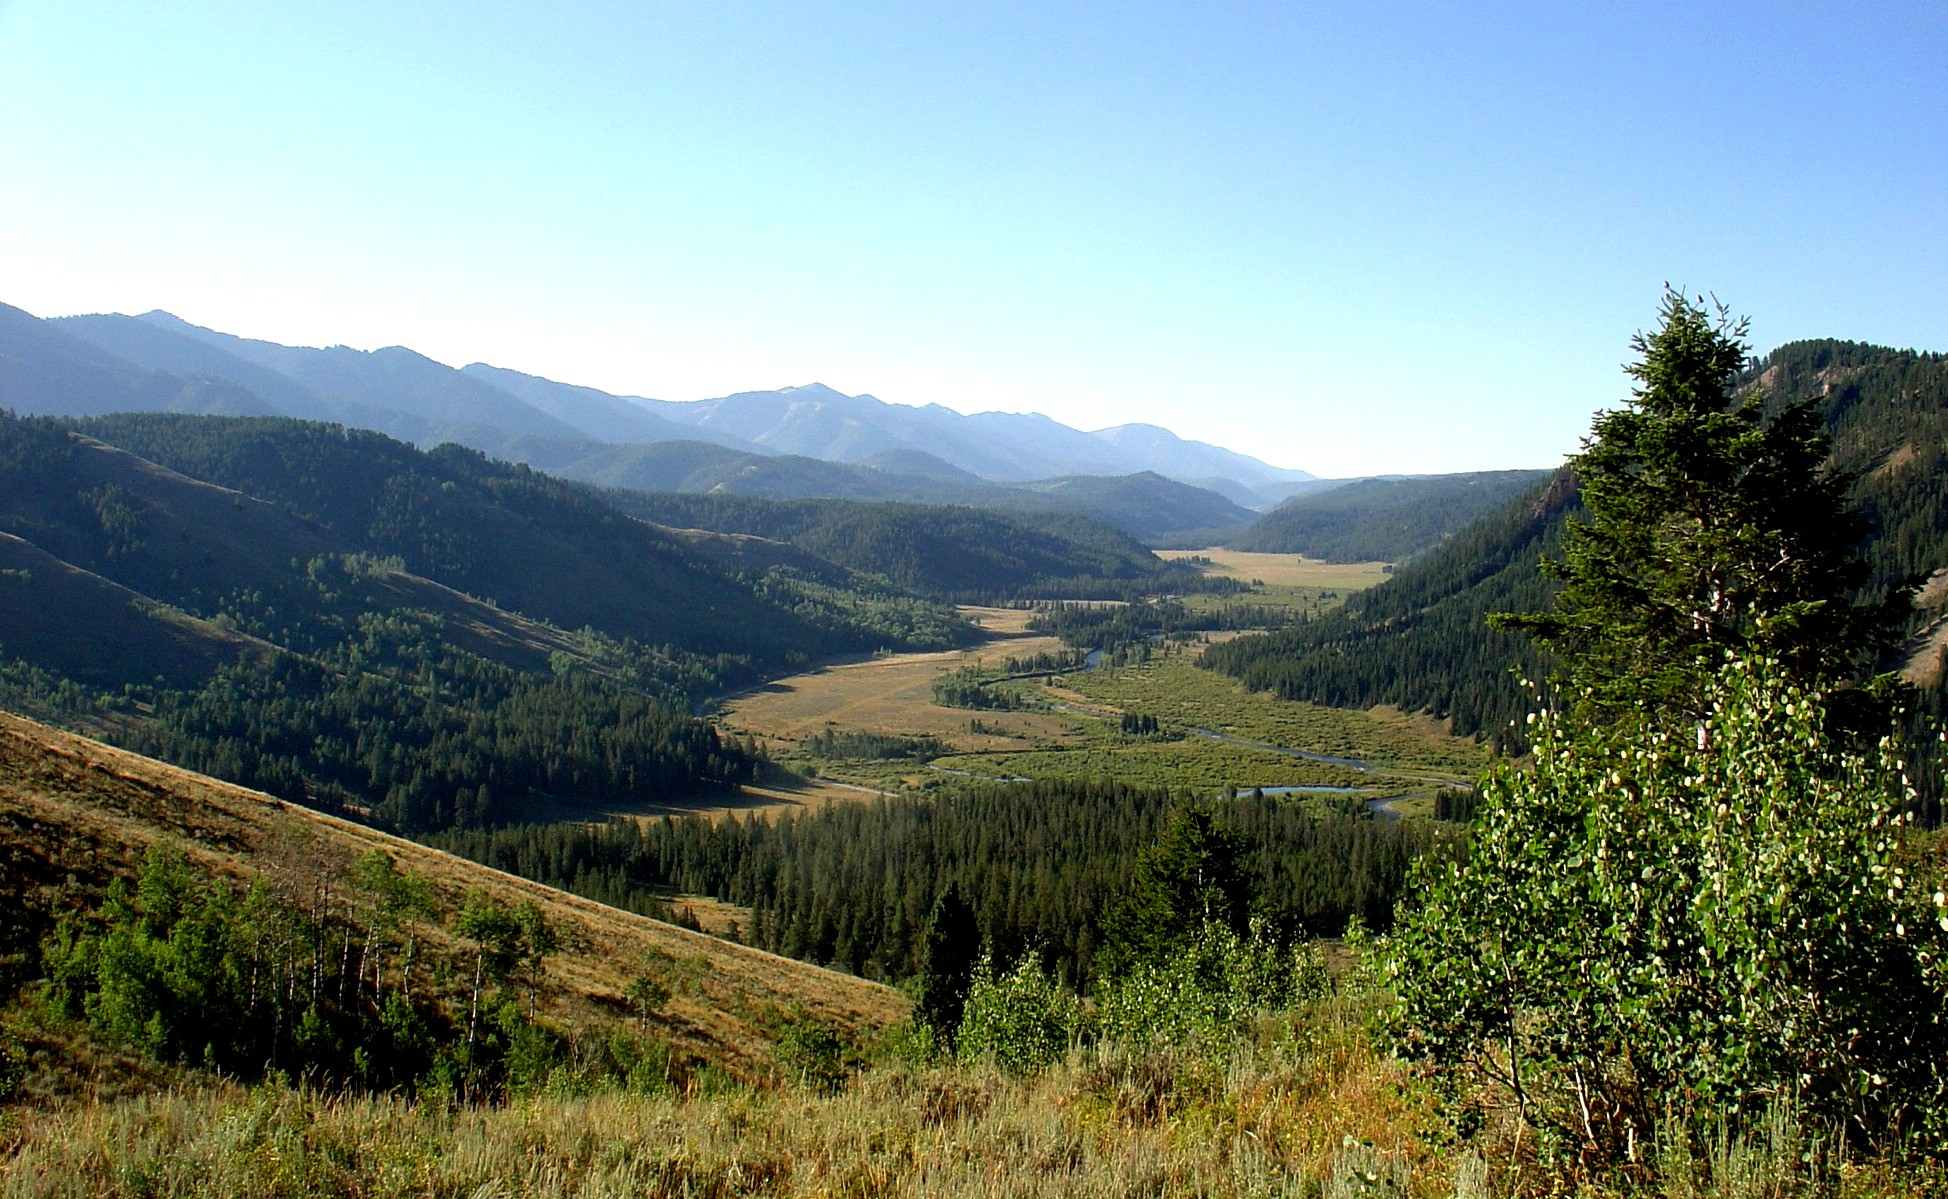 Greys River Valley on the Greys River Ranger District